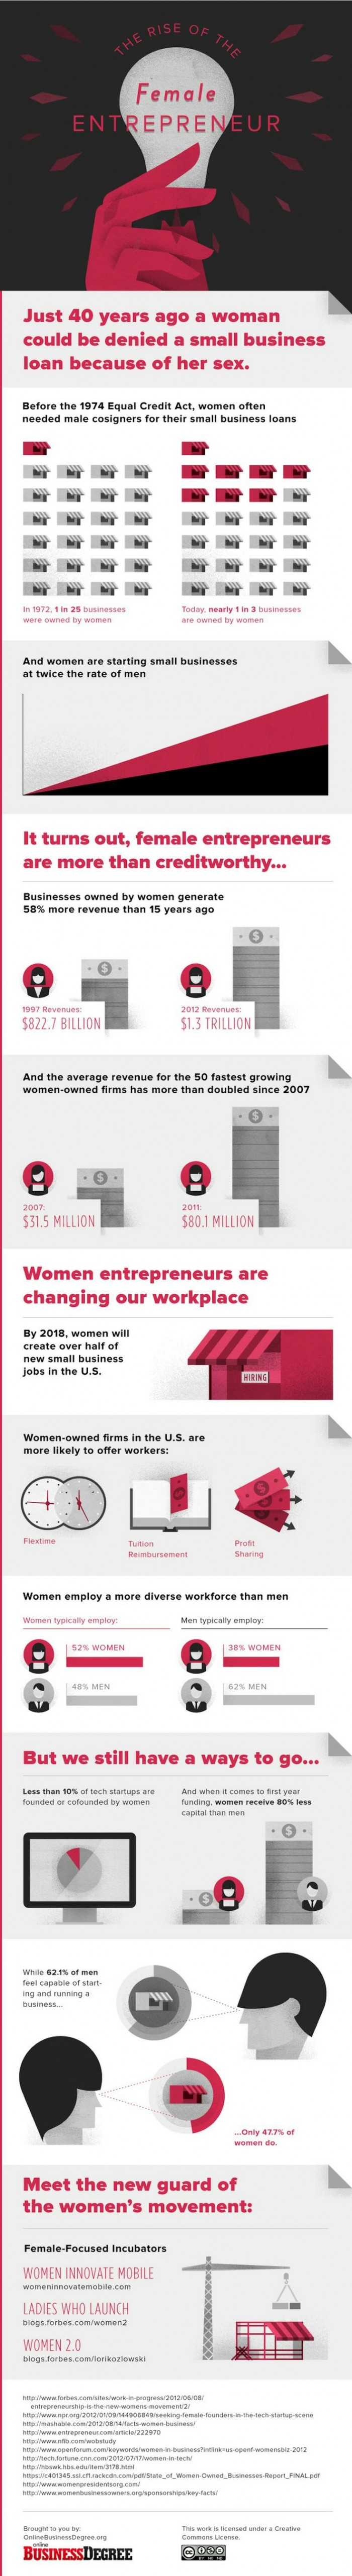 female-entrepreneurs